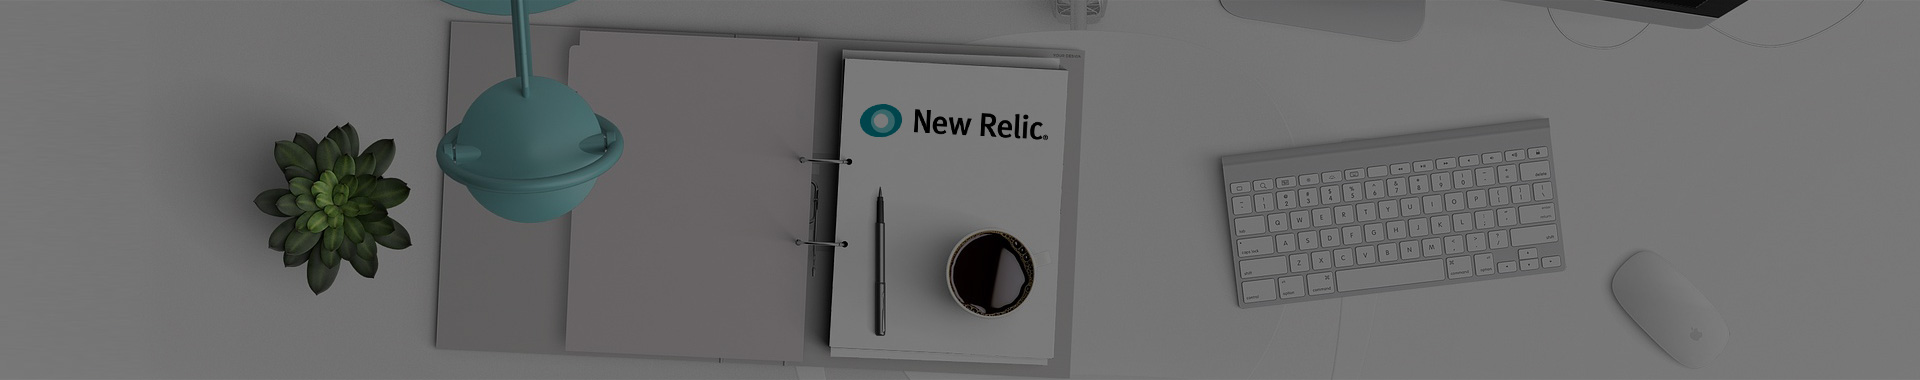 IT demand management tool New Relic